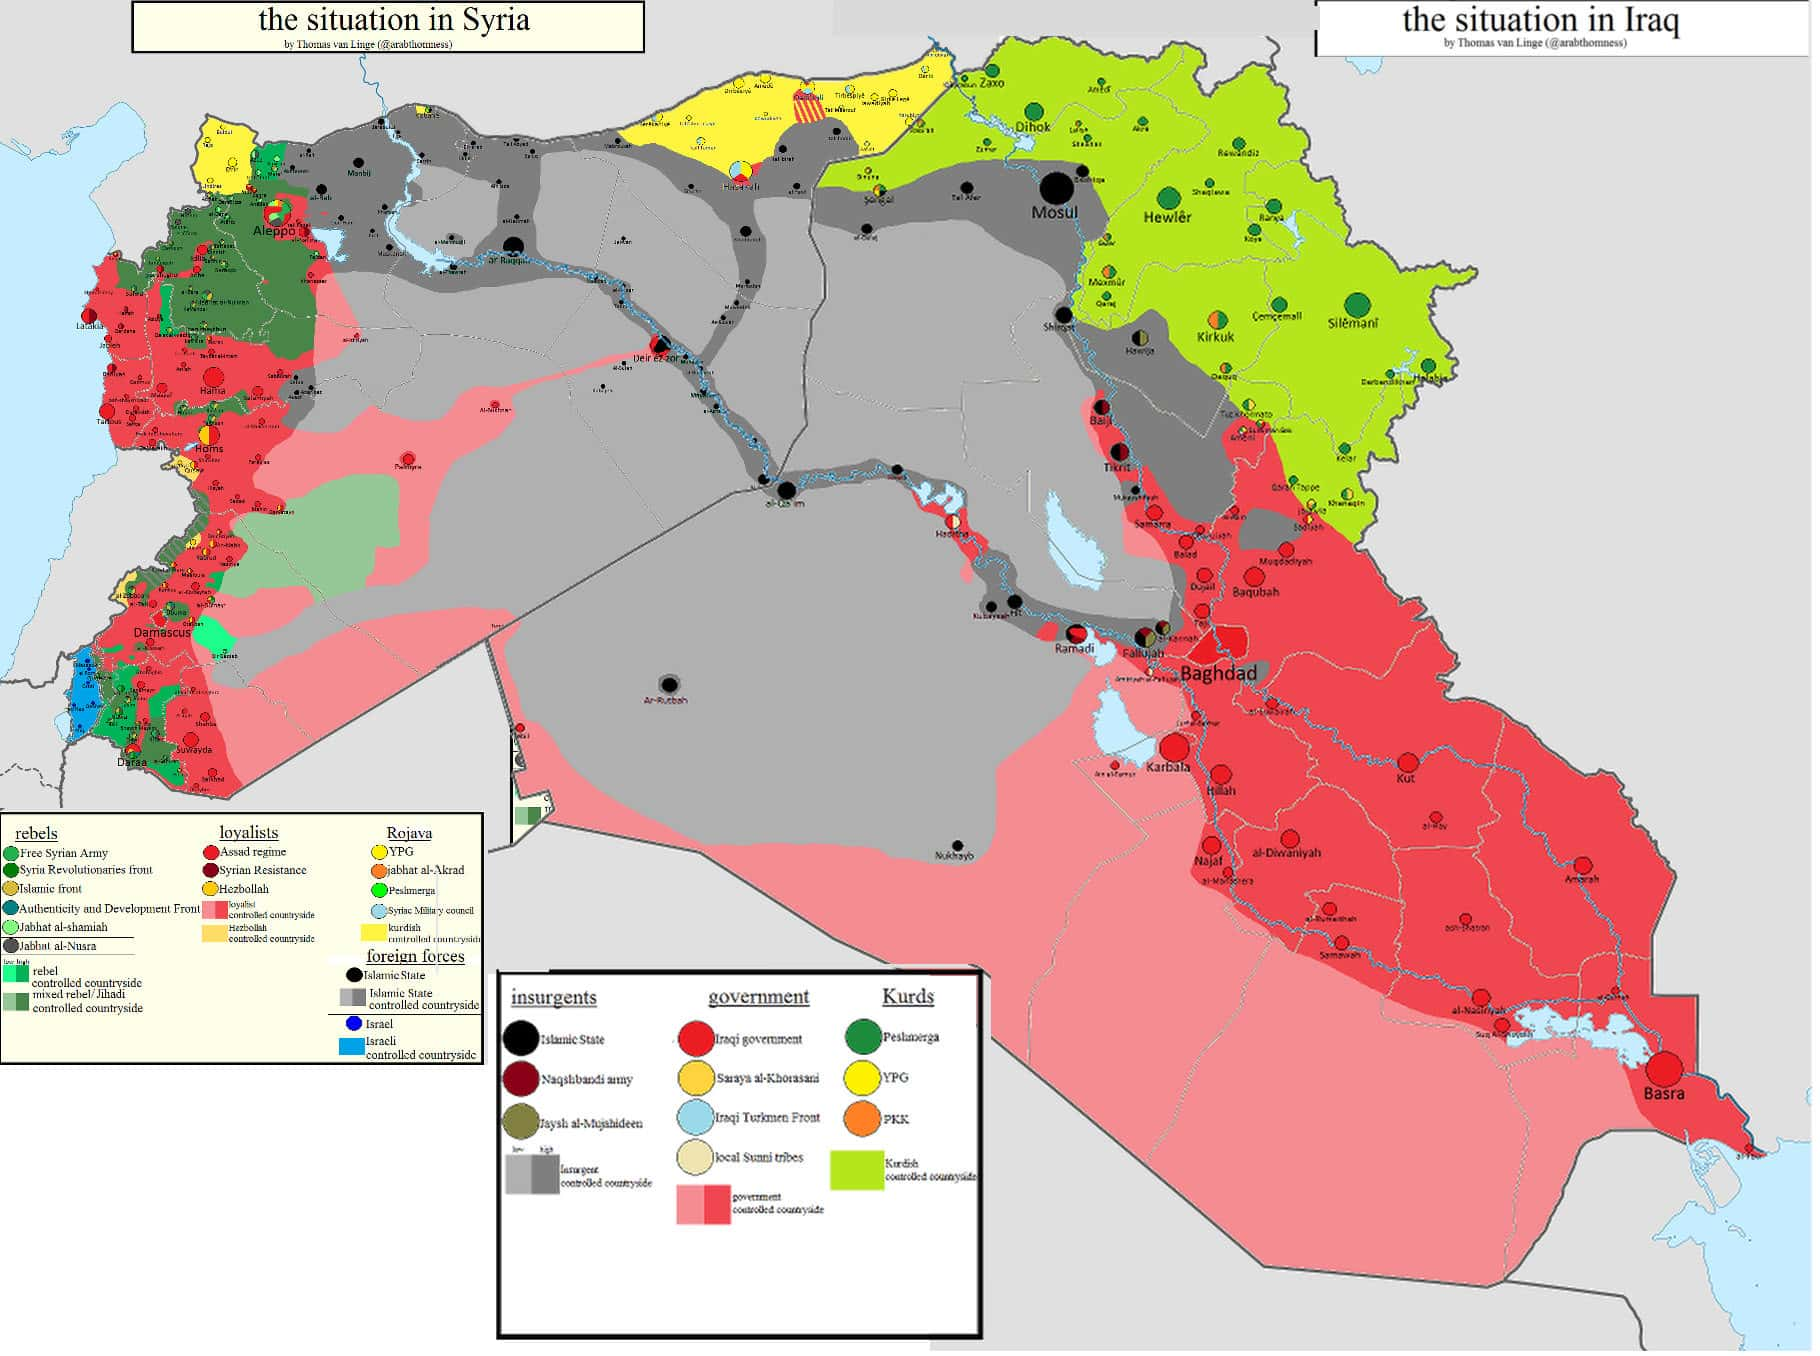 The conflicted geography of isis rebel news the shading spreading across this map might be interpreted as reflecting is black flags were it not juxtaposed by the green signifying iraqi kurdistan gumiabroncs Image collections